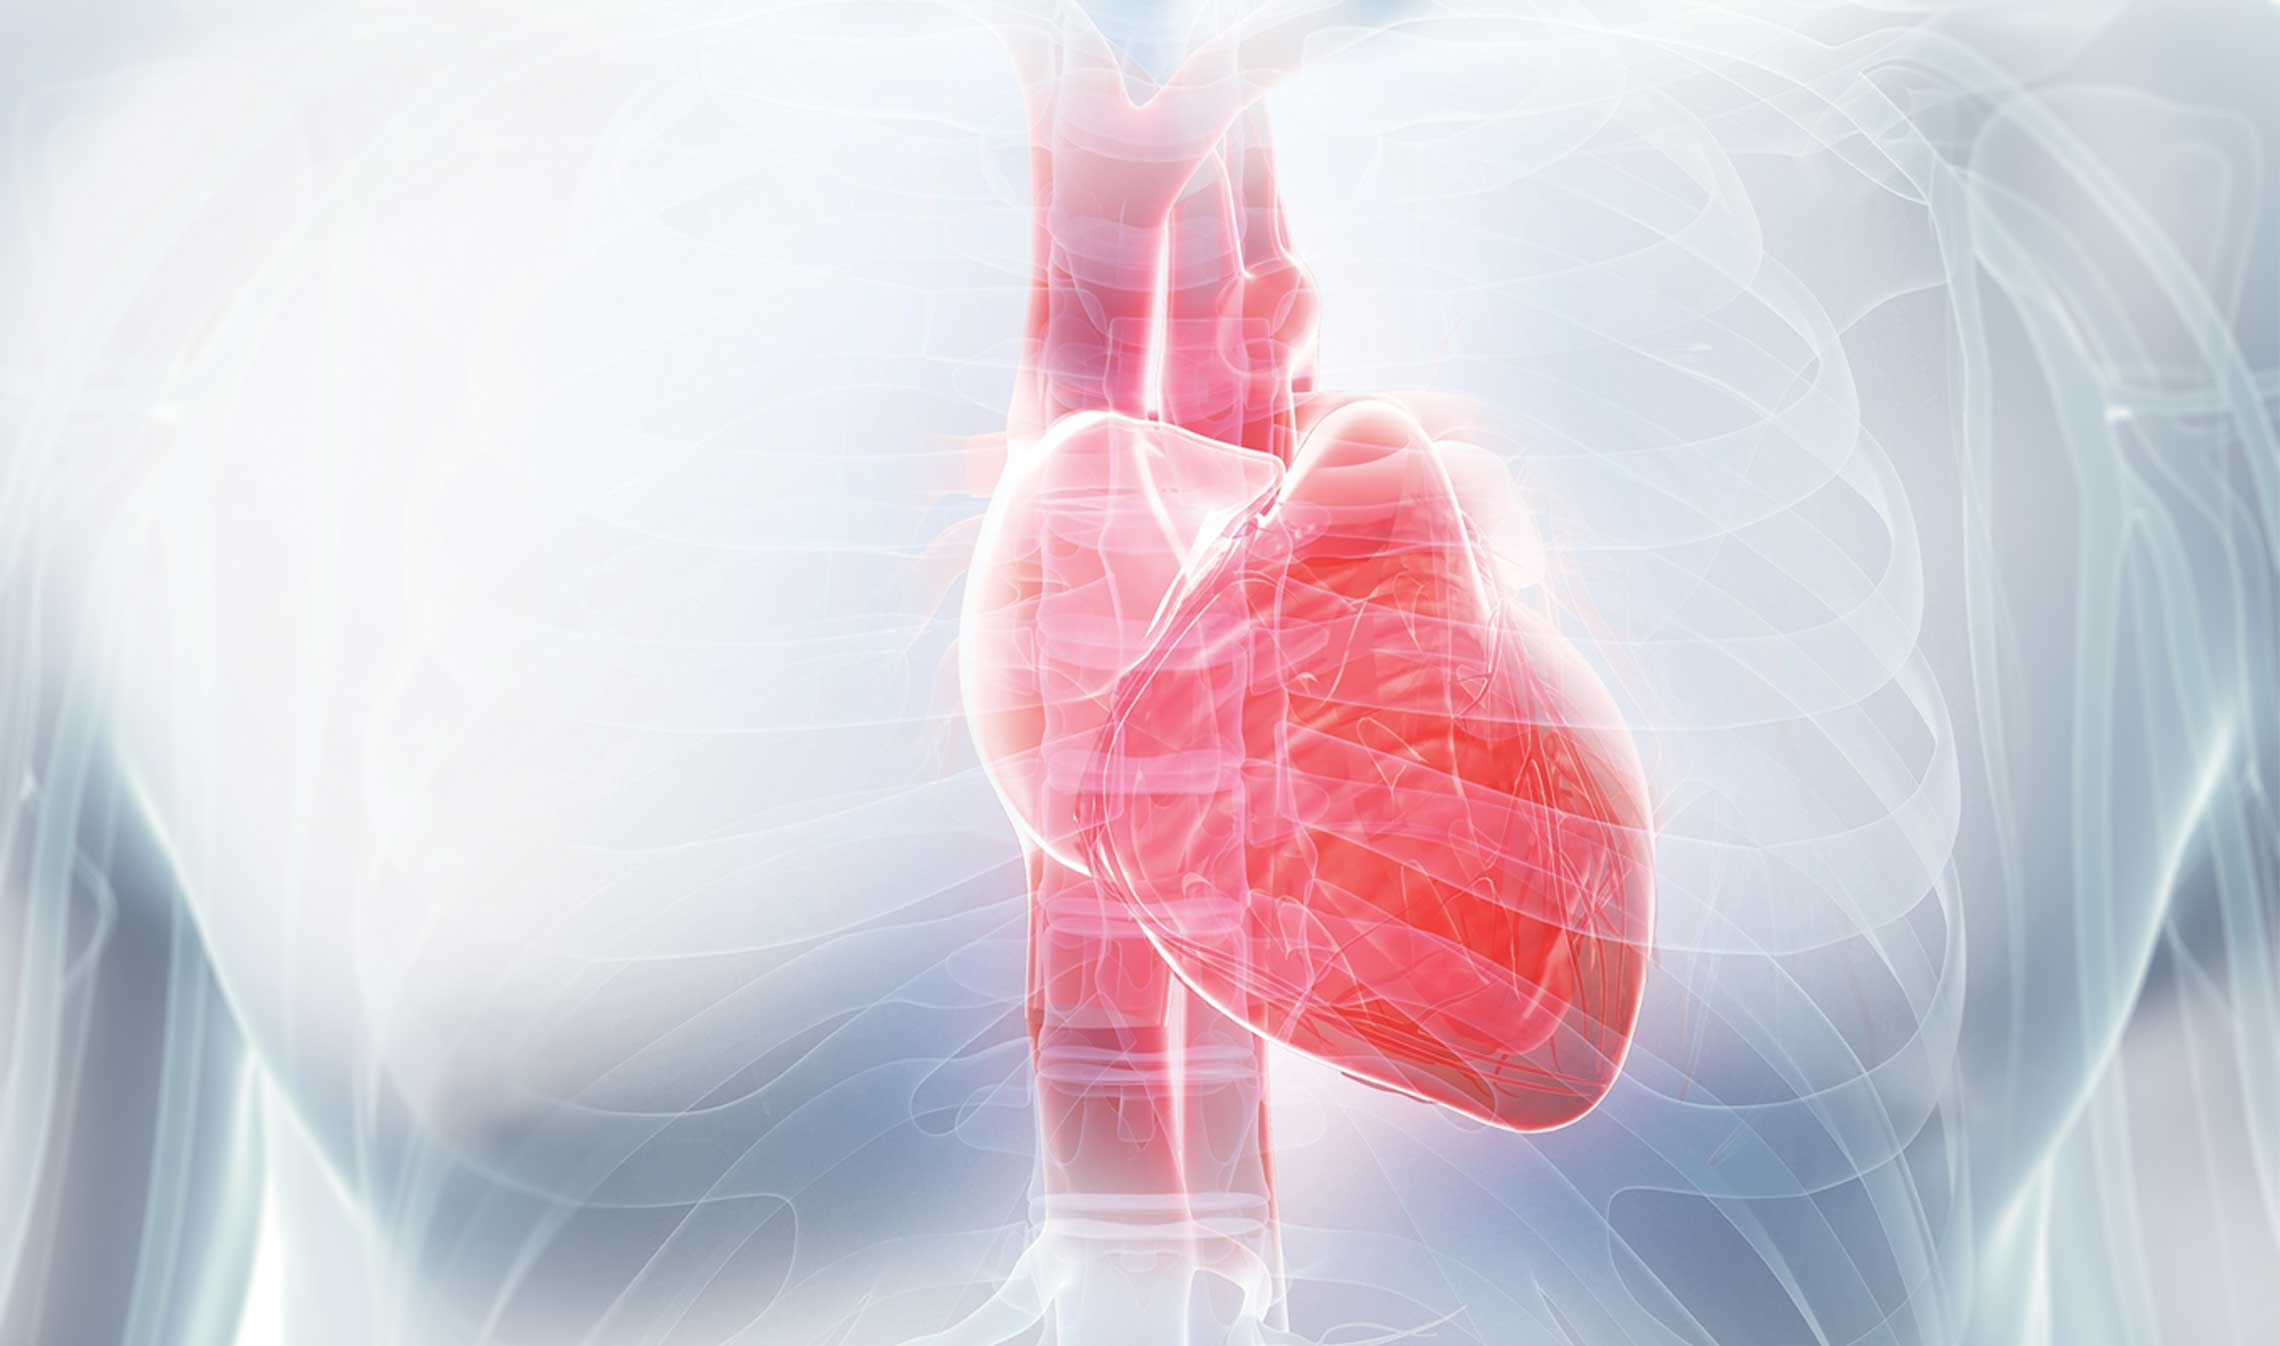 How can we regenerate a damaged heart?